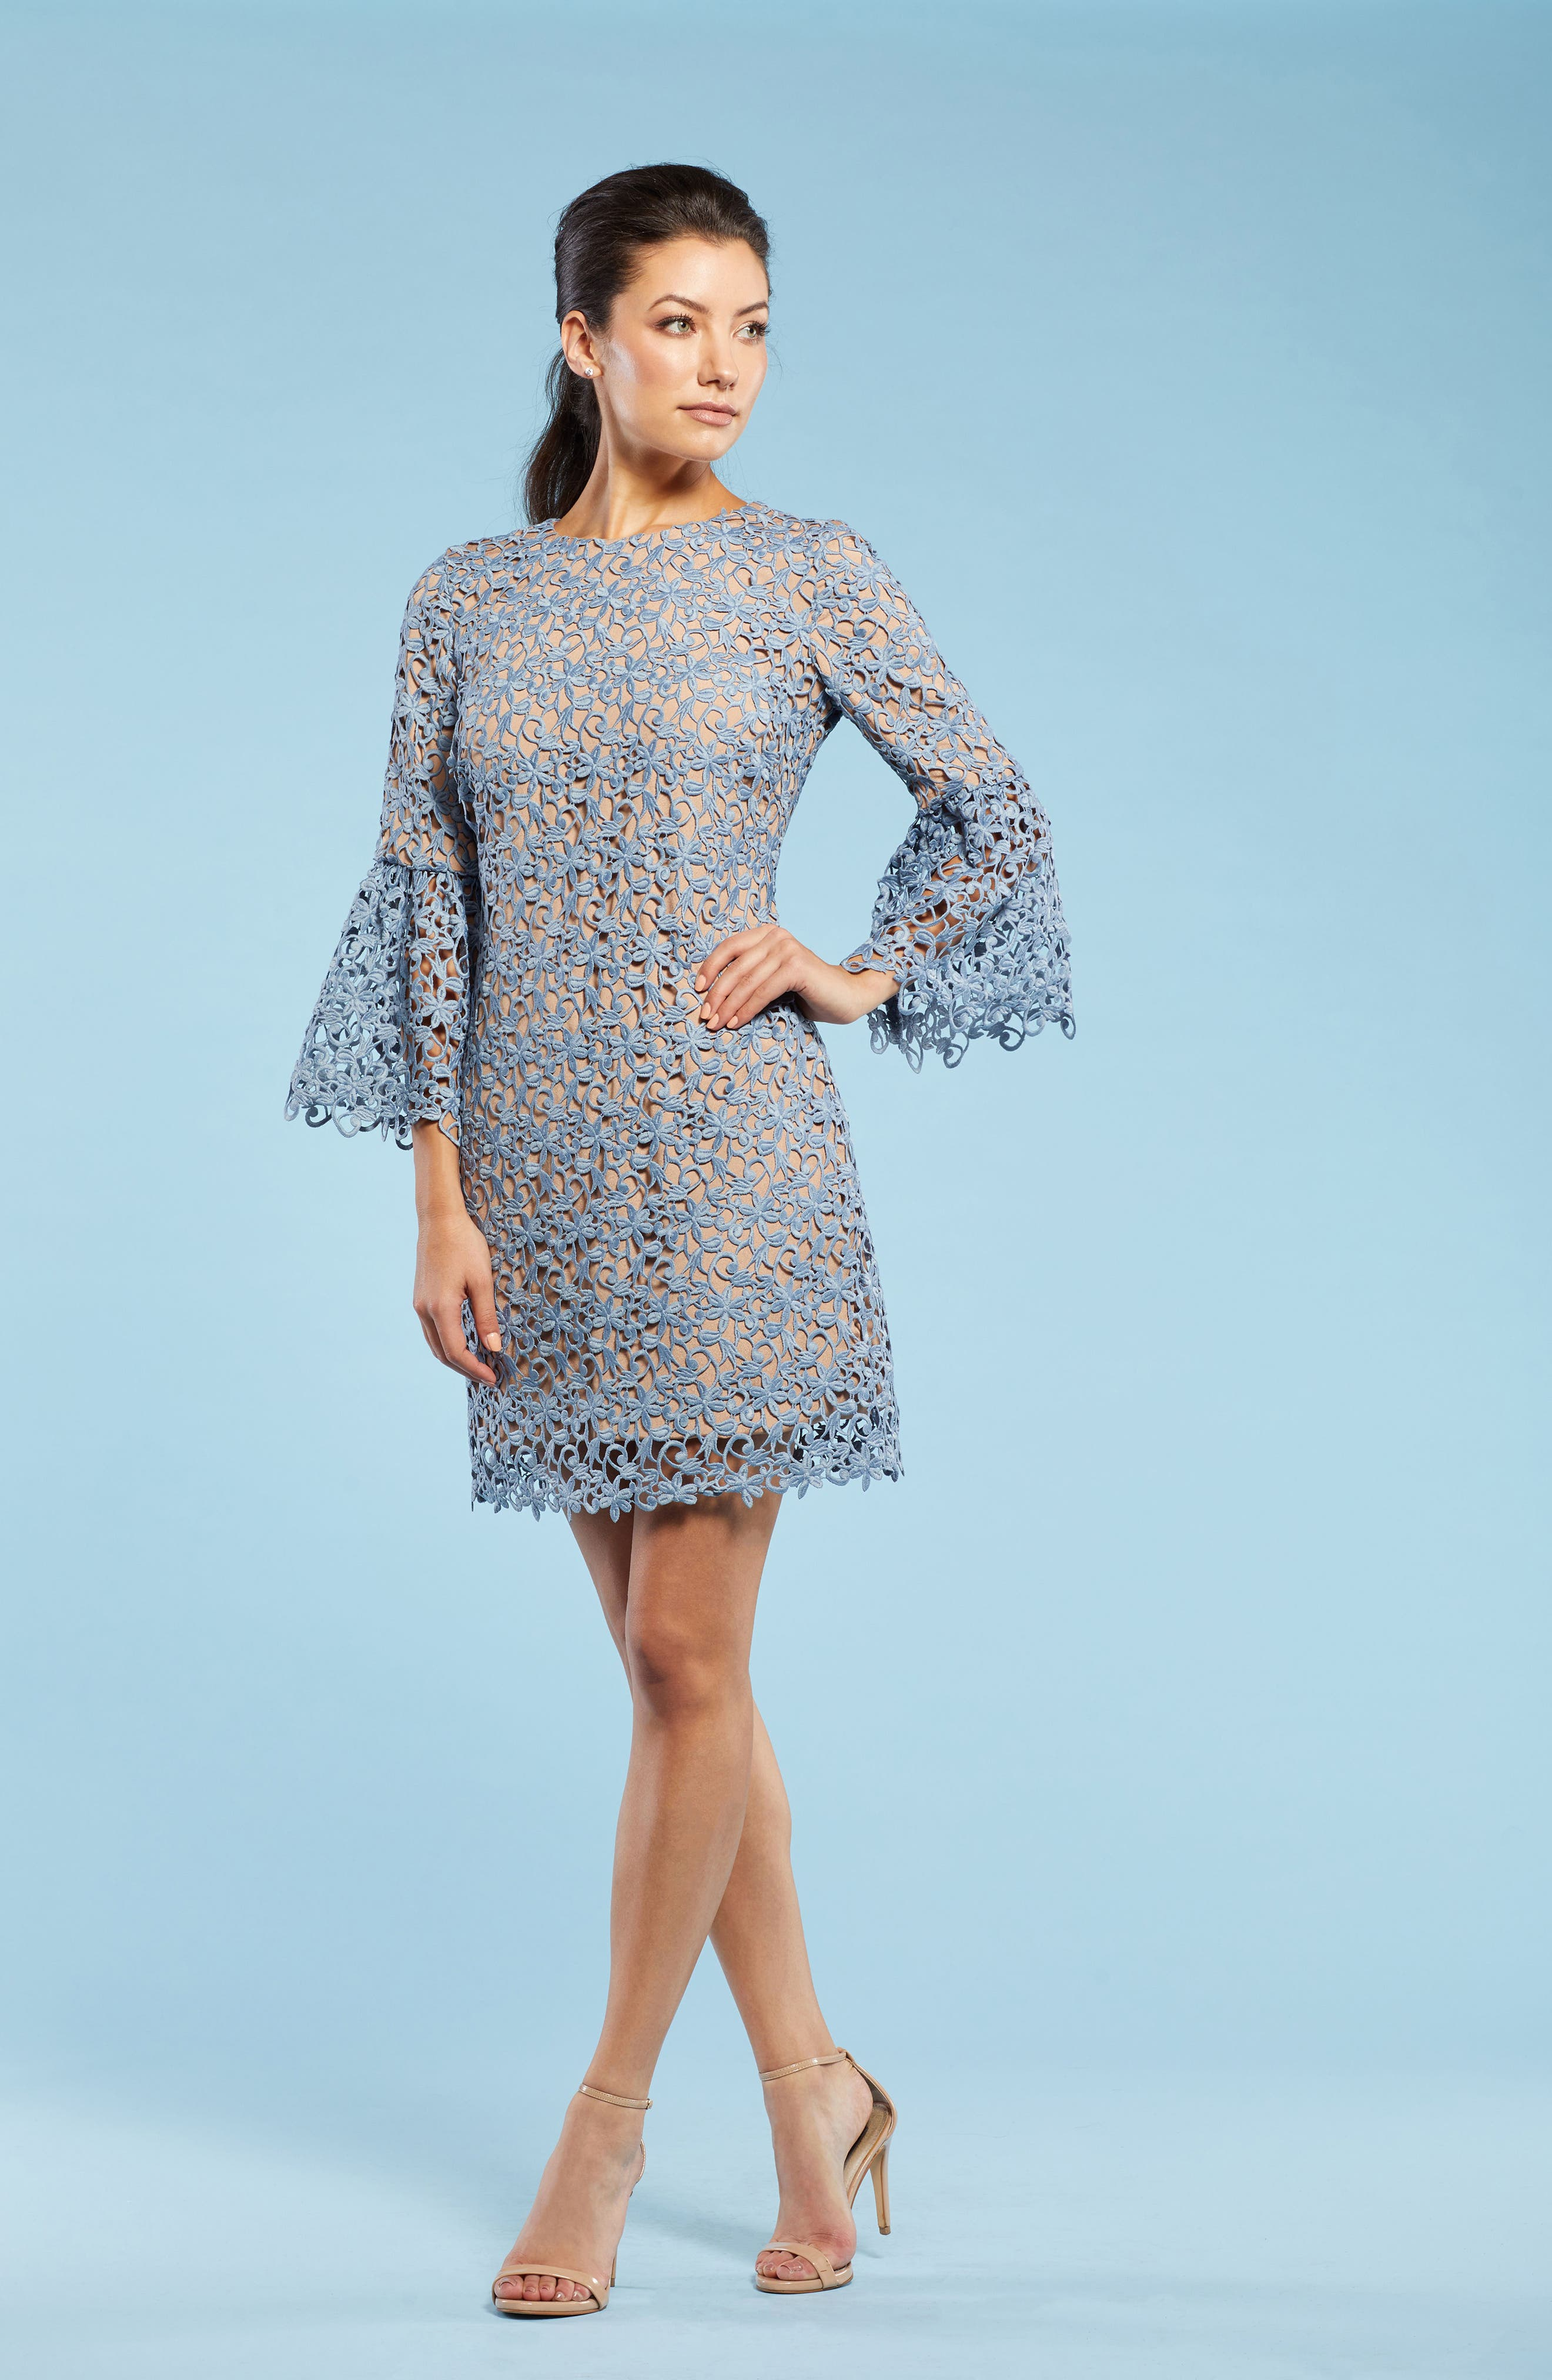 Paige Crochet Shift Dress,                             Alternate thumbnail 2, color,                             Mineral Blue/ Nude